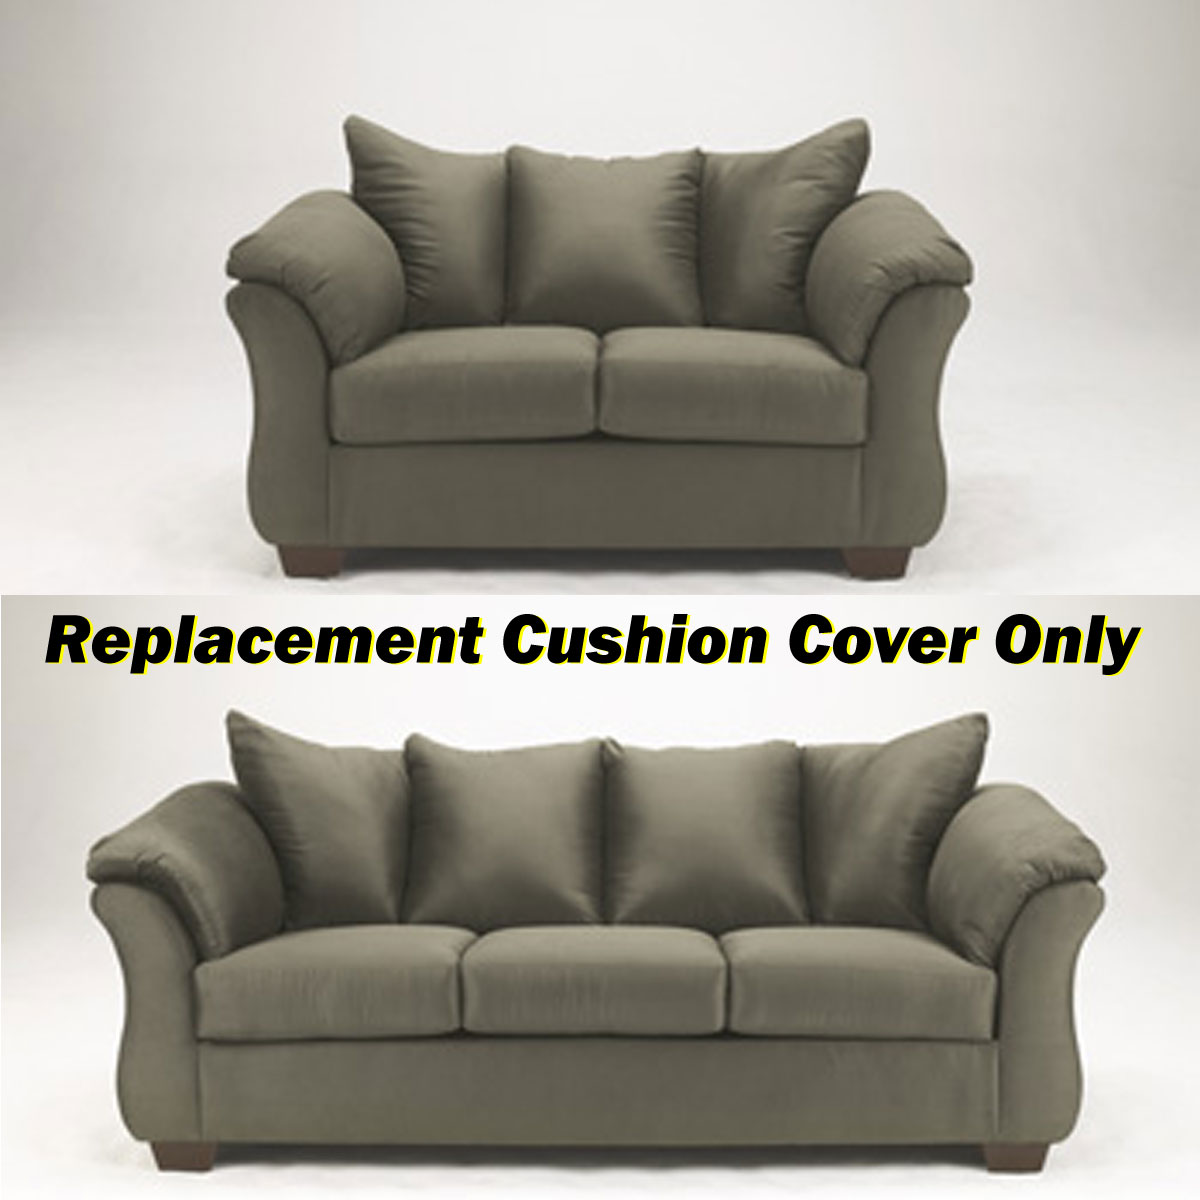 microfiber sofa cushion cover replacement. Black Bedroom Furniture Sets. Home Design Ideas